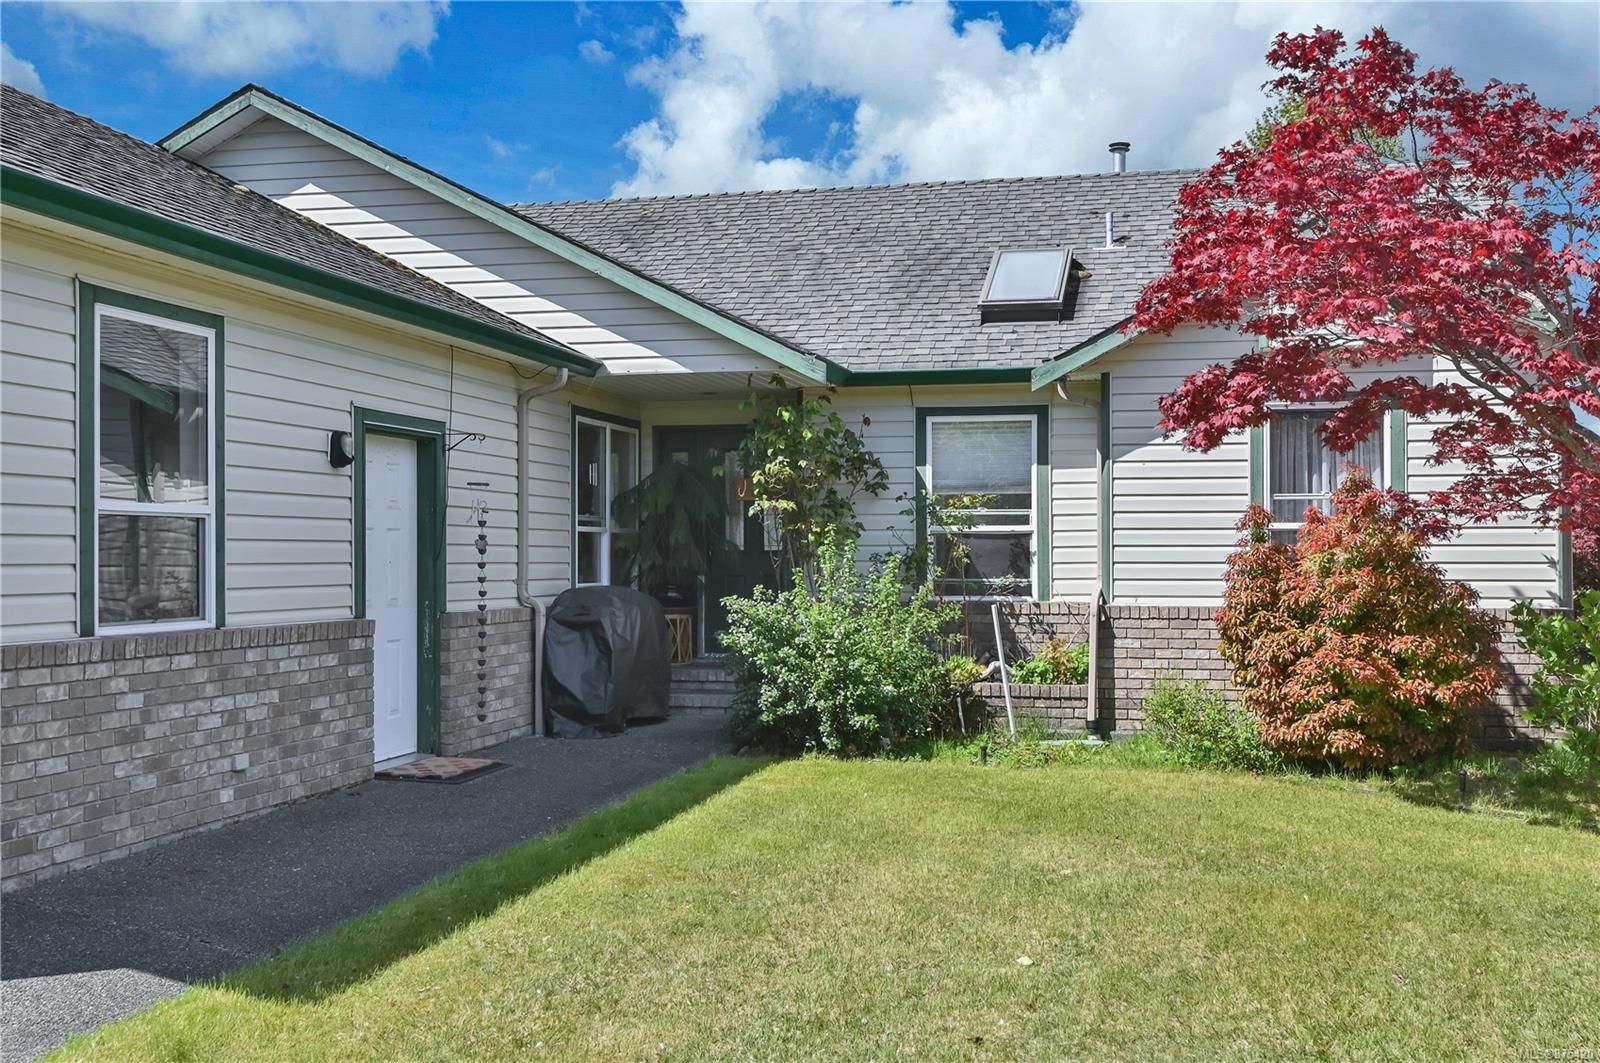 Main Photo: 290 Stratford Dr in : CR Campbell River West House for sale (Campbell River)  : MLS®# 875420